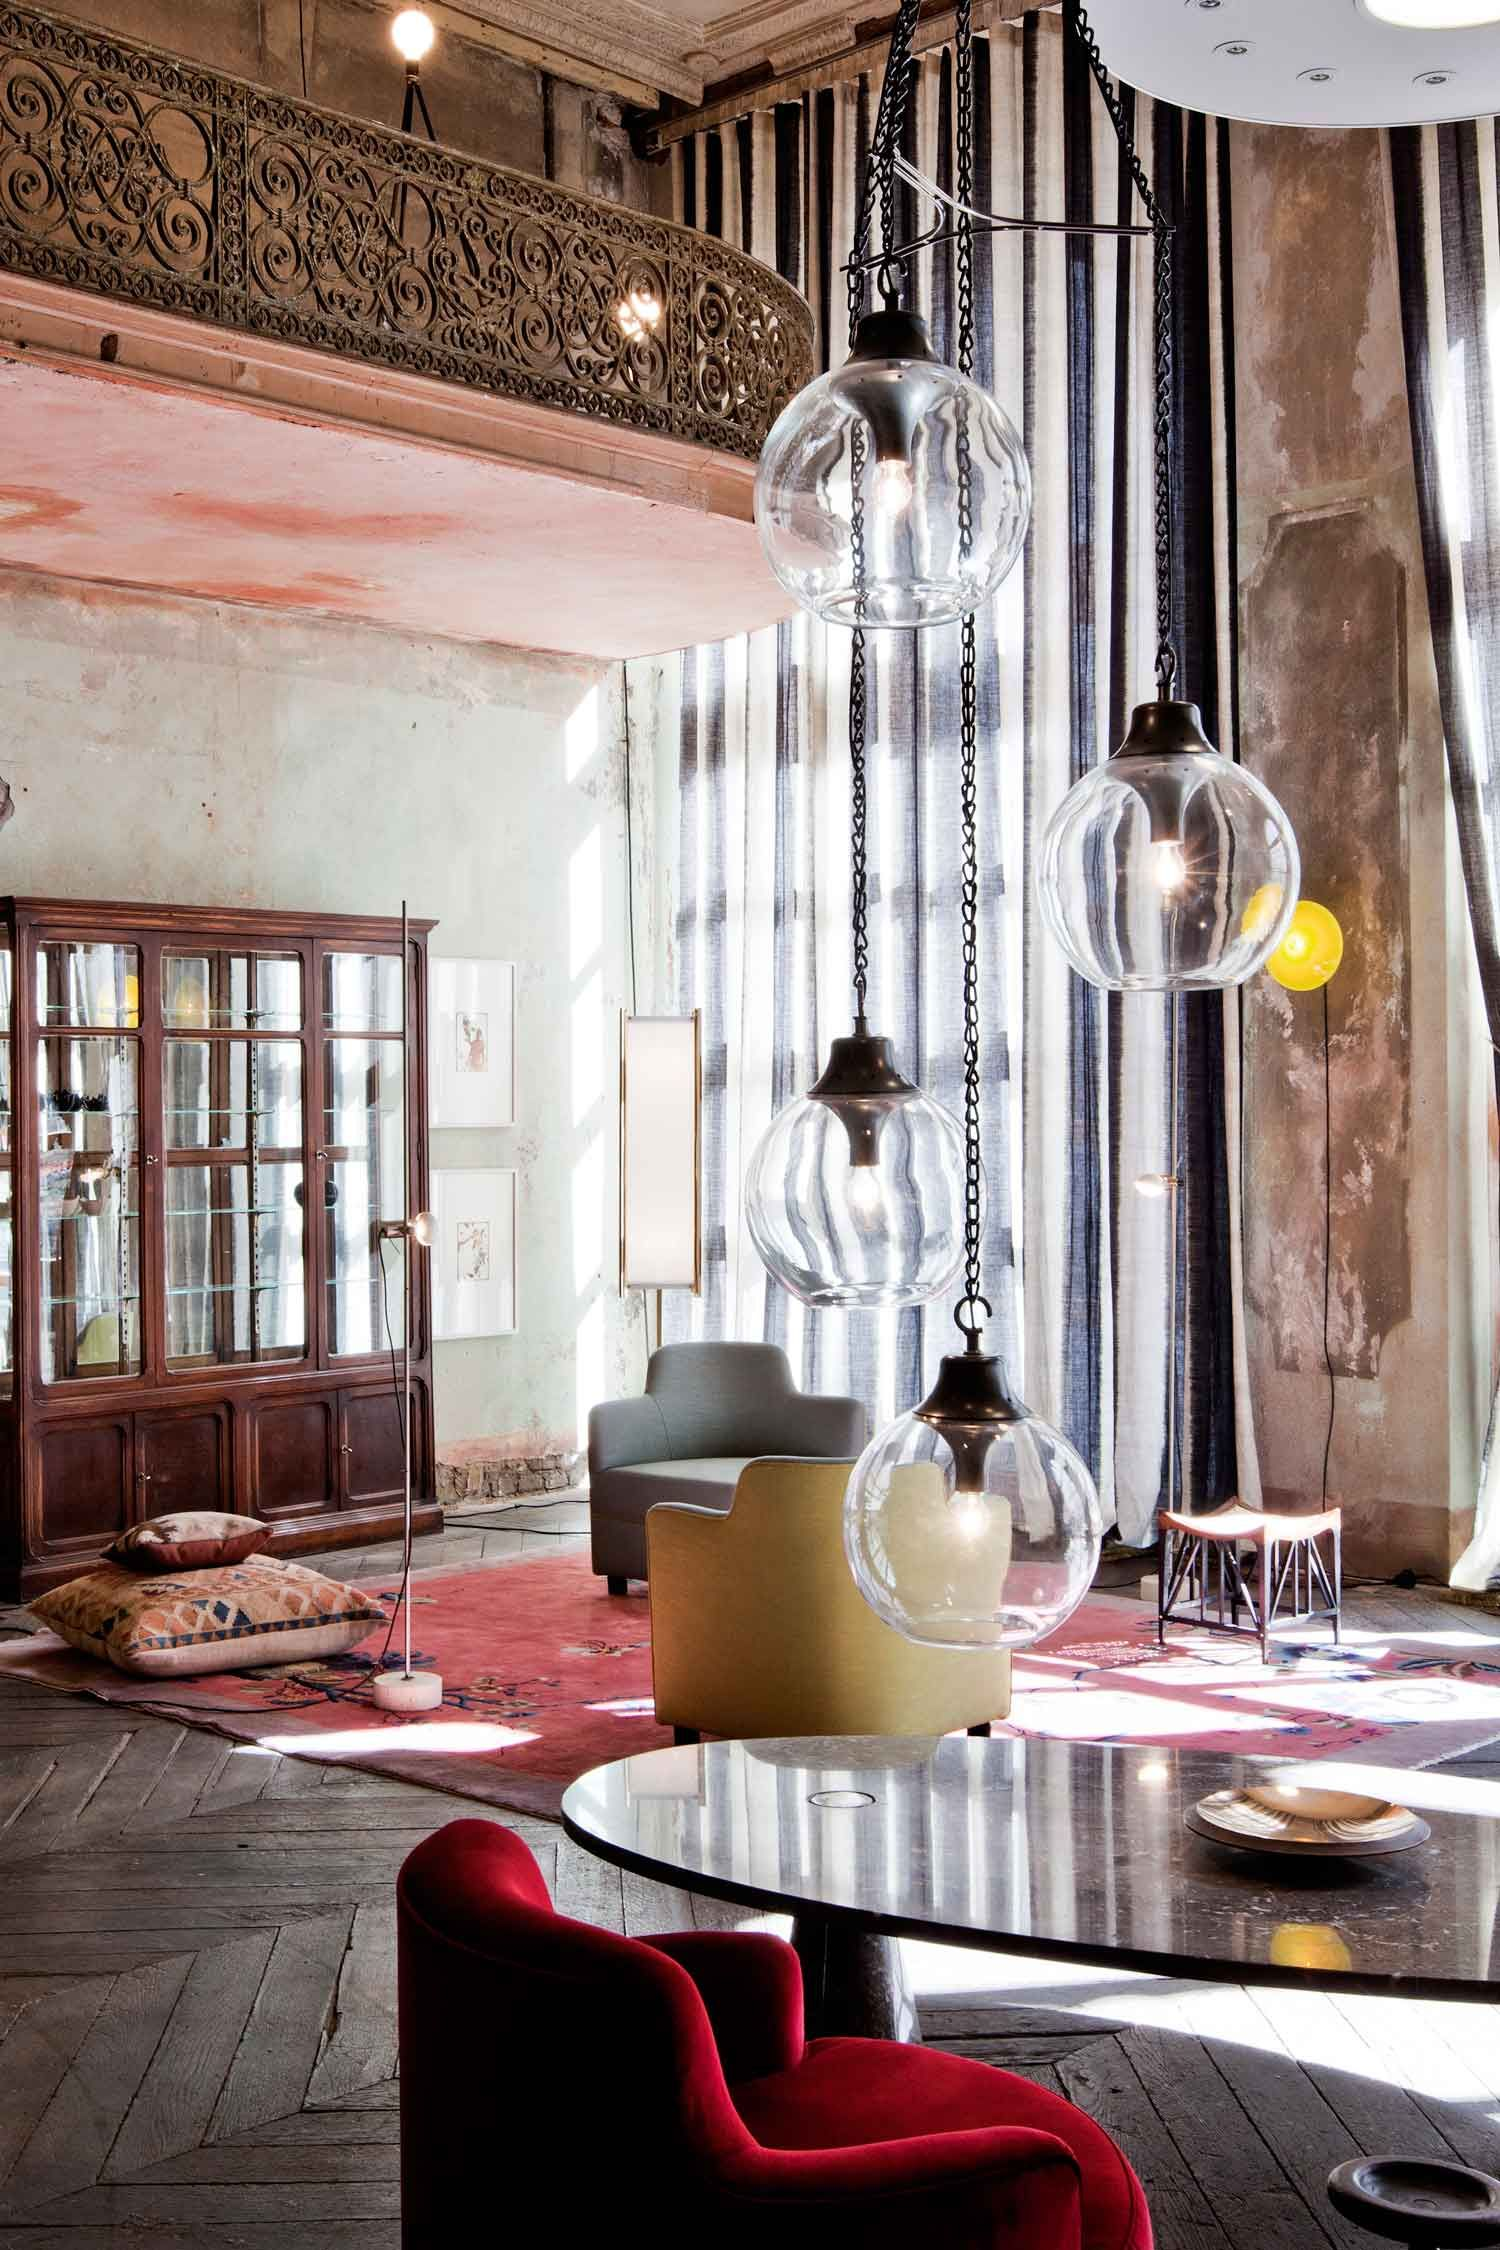 Interior Design Berlin Selected Projects By Berlin-based Gisbert Poppler. | Eclectic Interior, Design, Interior Design Inspiration